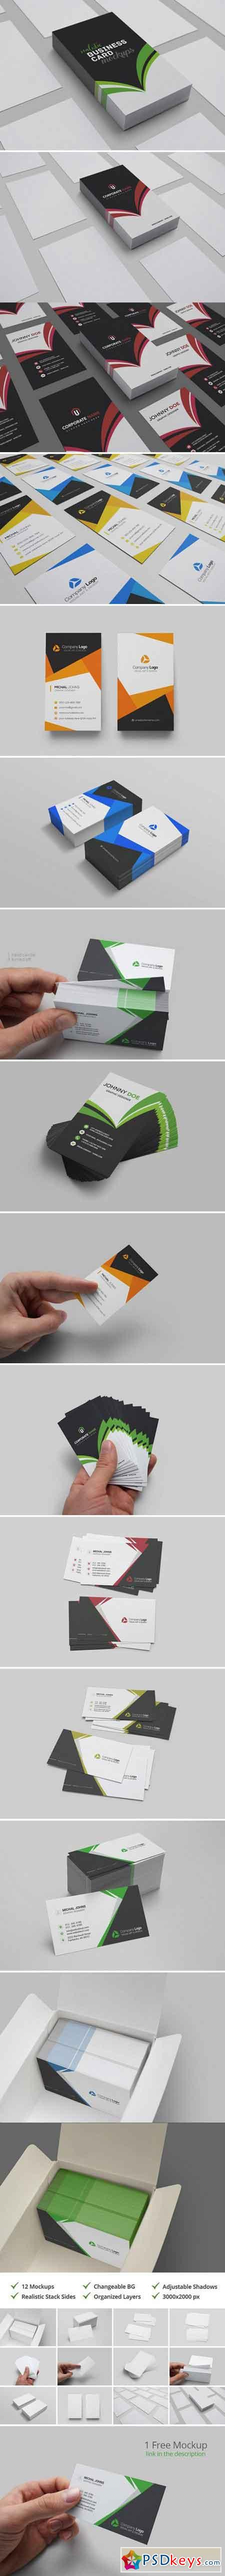 Realistic Business Card Mockups 2072315